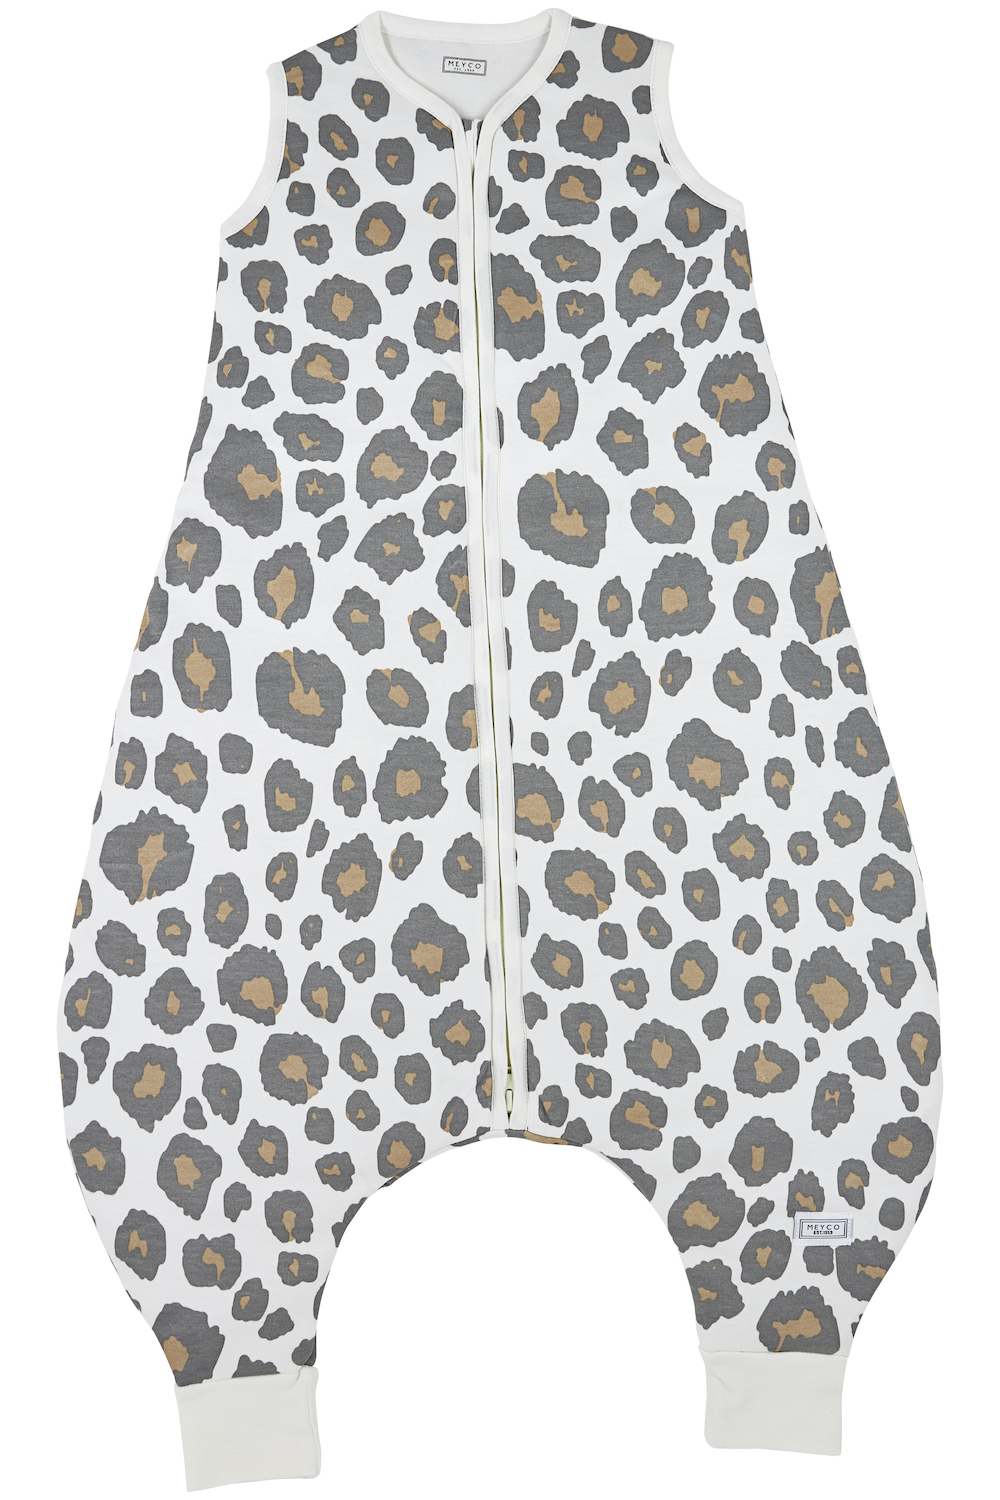 Babyslaapzak Jumper Panter - Neutral - 92